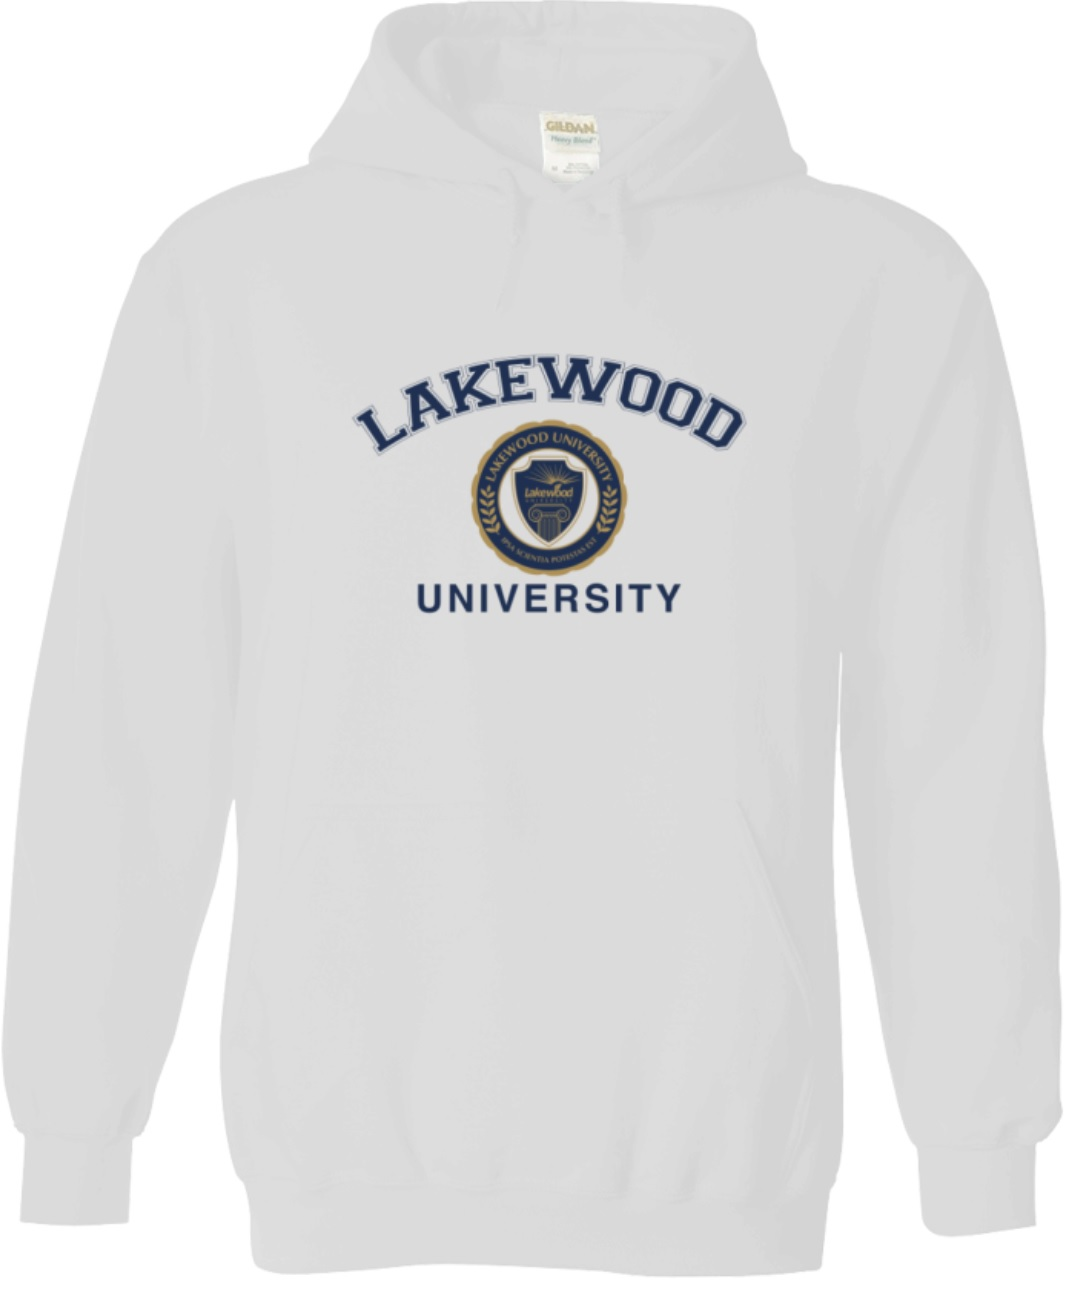 Lakewood Gear